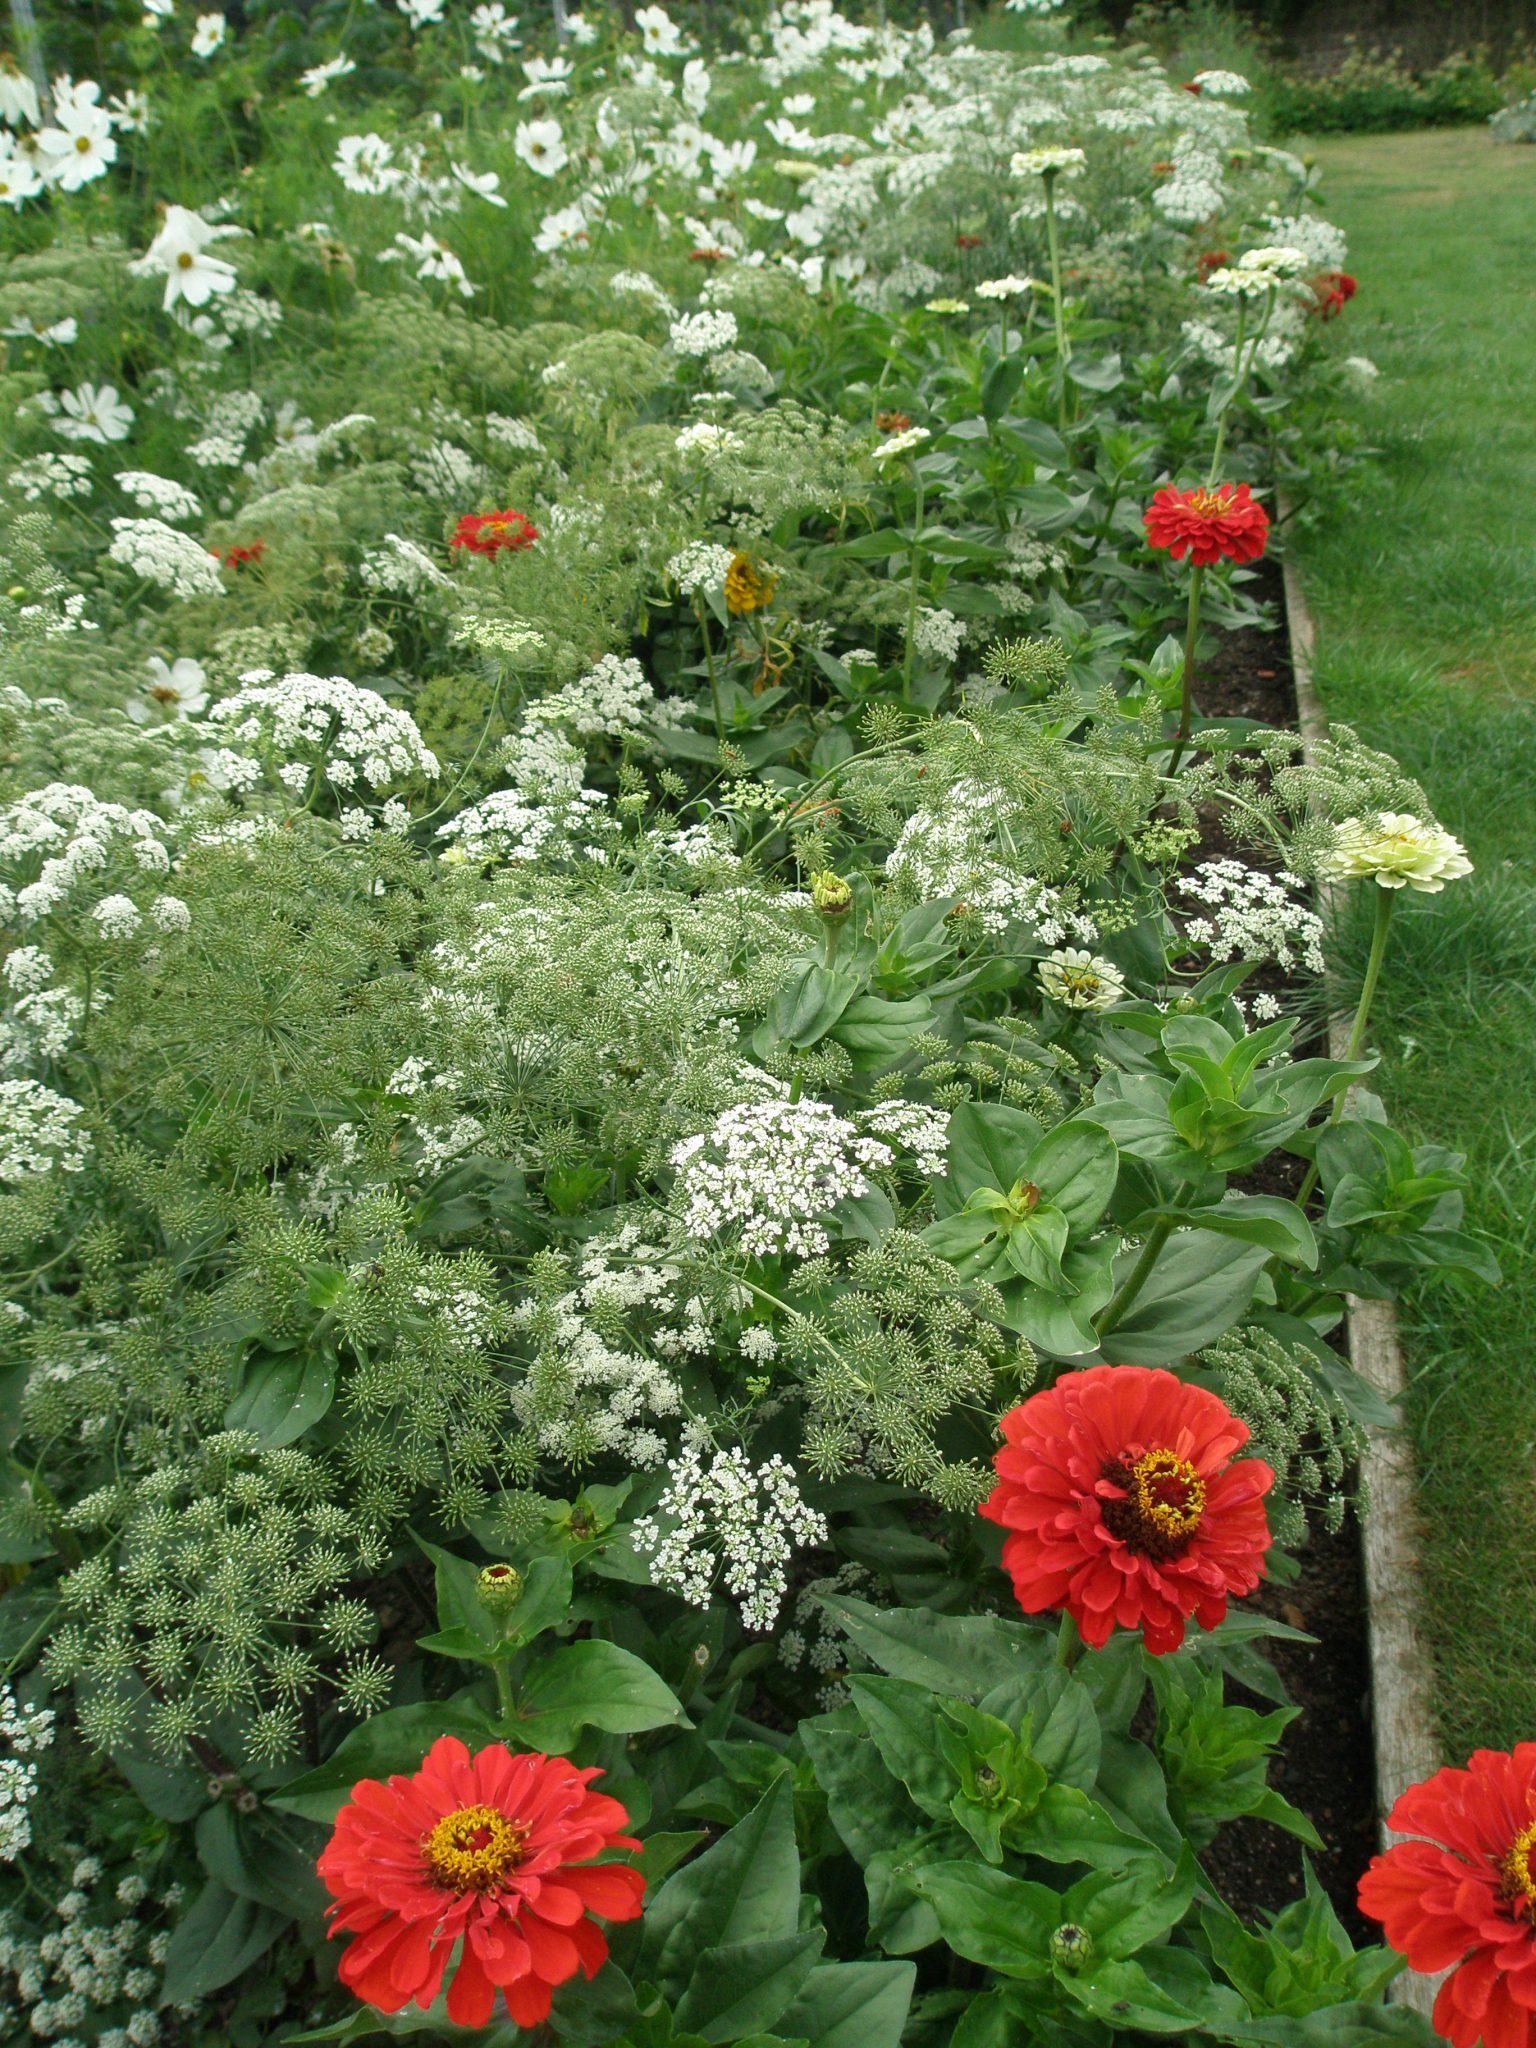 A Tapestry of Zinnias and Herbs in the Walled Garden.